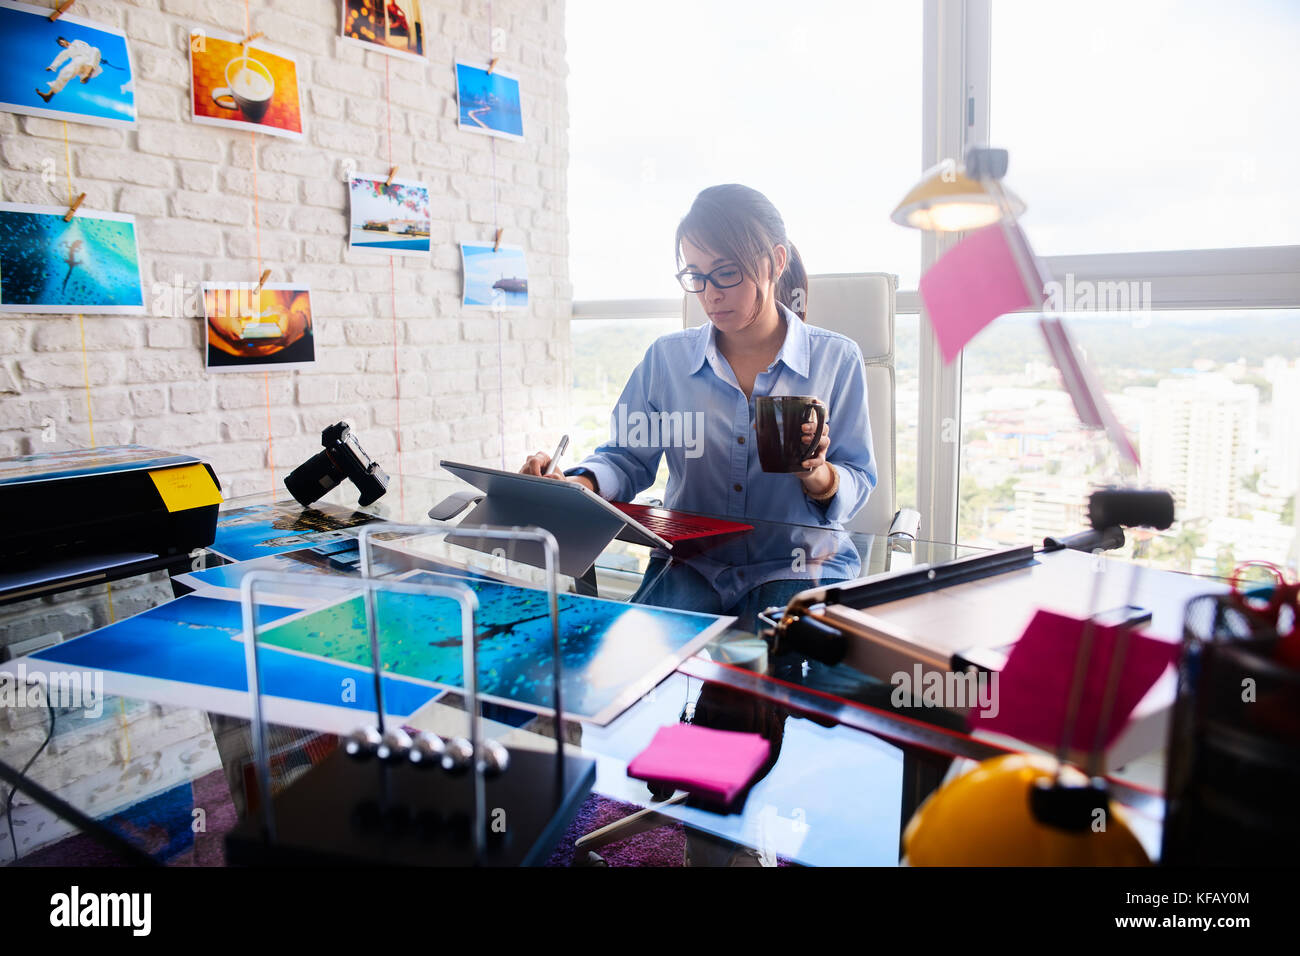 Beautiful Latina Girl Working As Photographer For Image Production - Stock Image